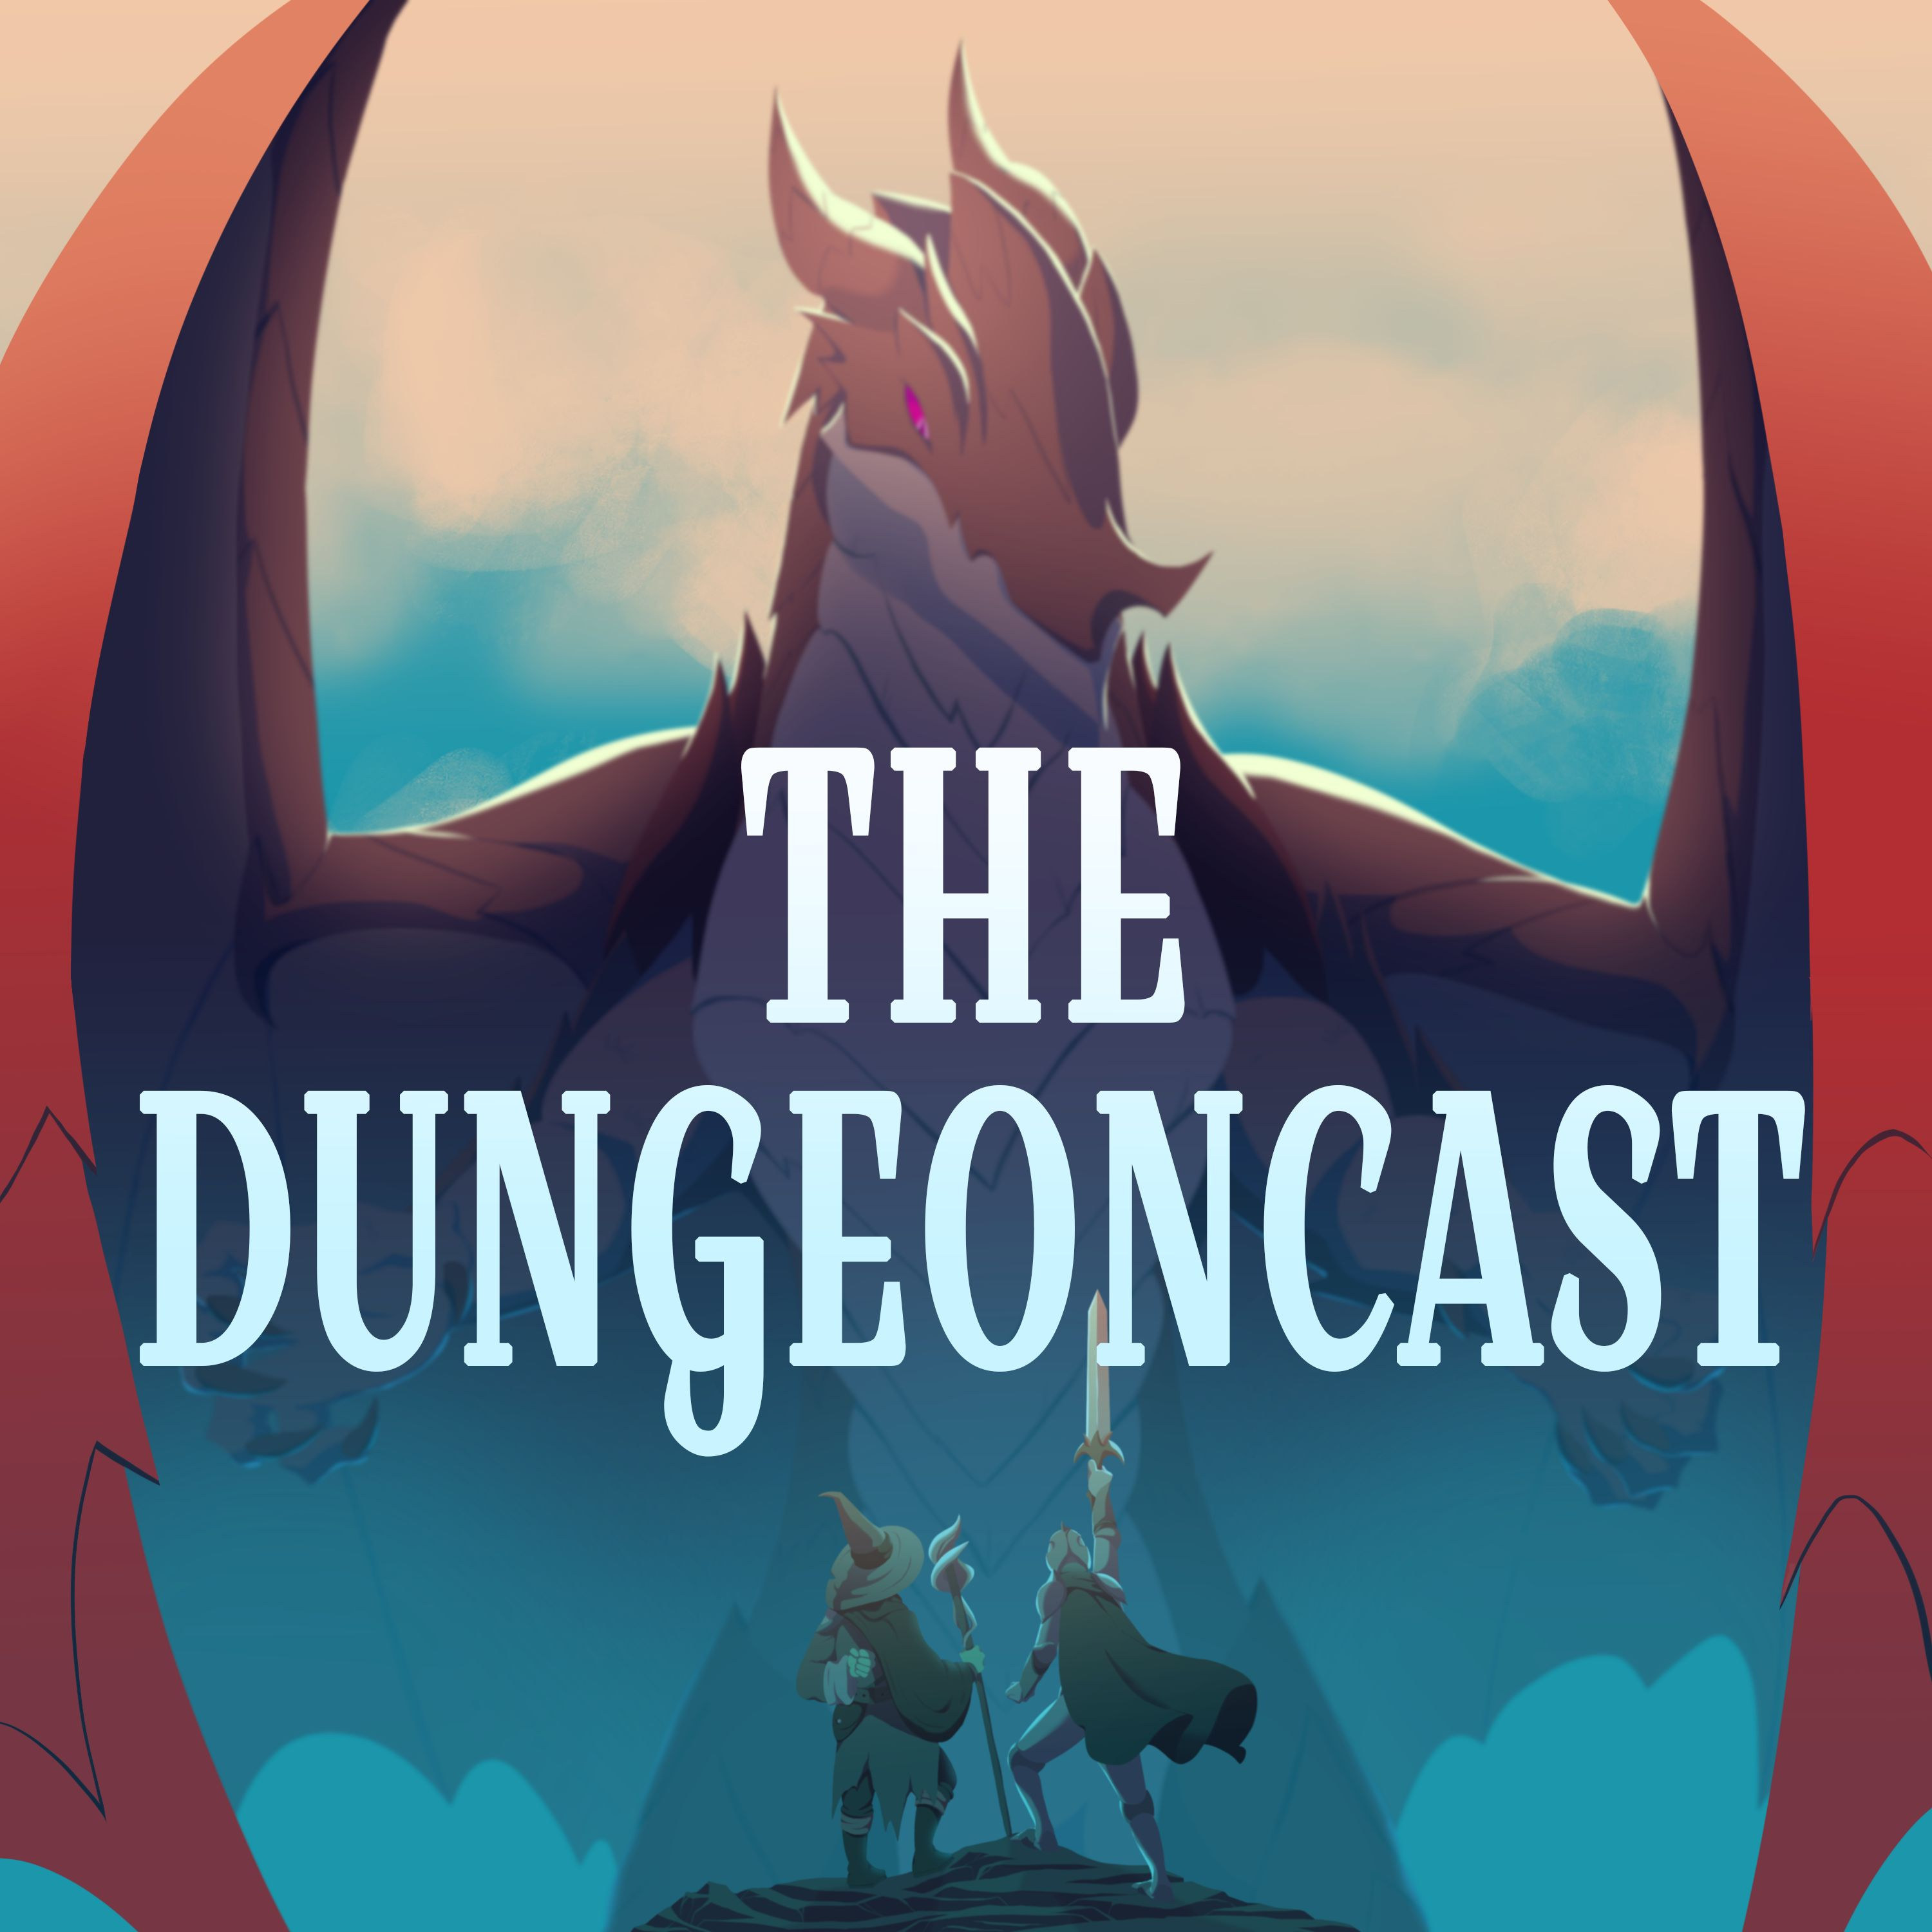 The Dungeoncast | Podbay